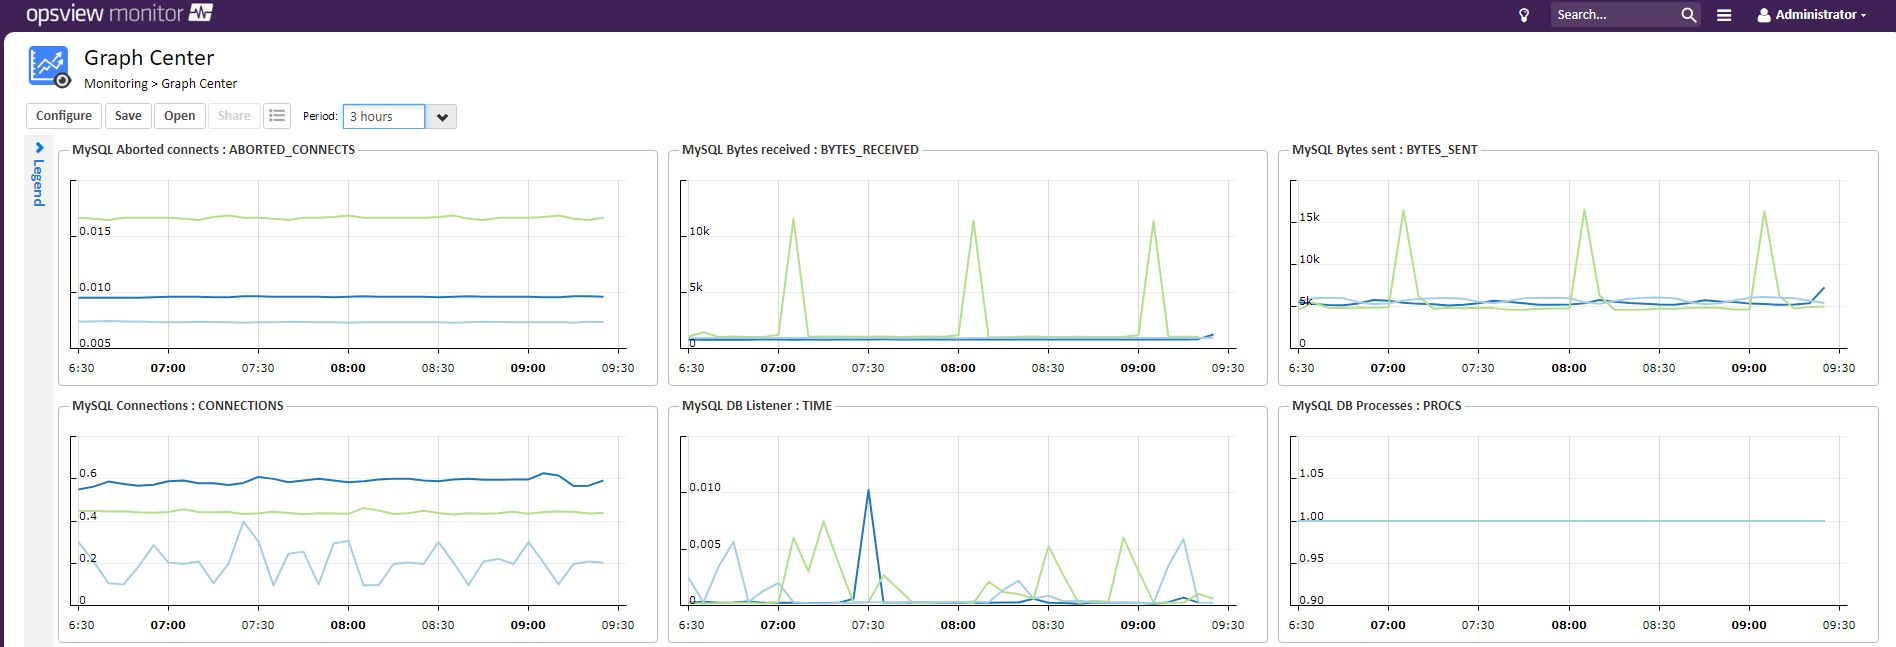 How Monitoring Can Help With Optimizing & Tuning MySQL